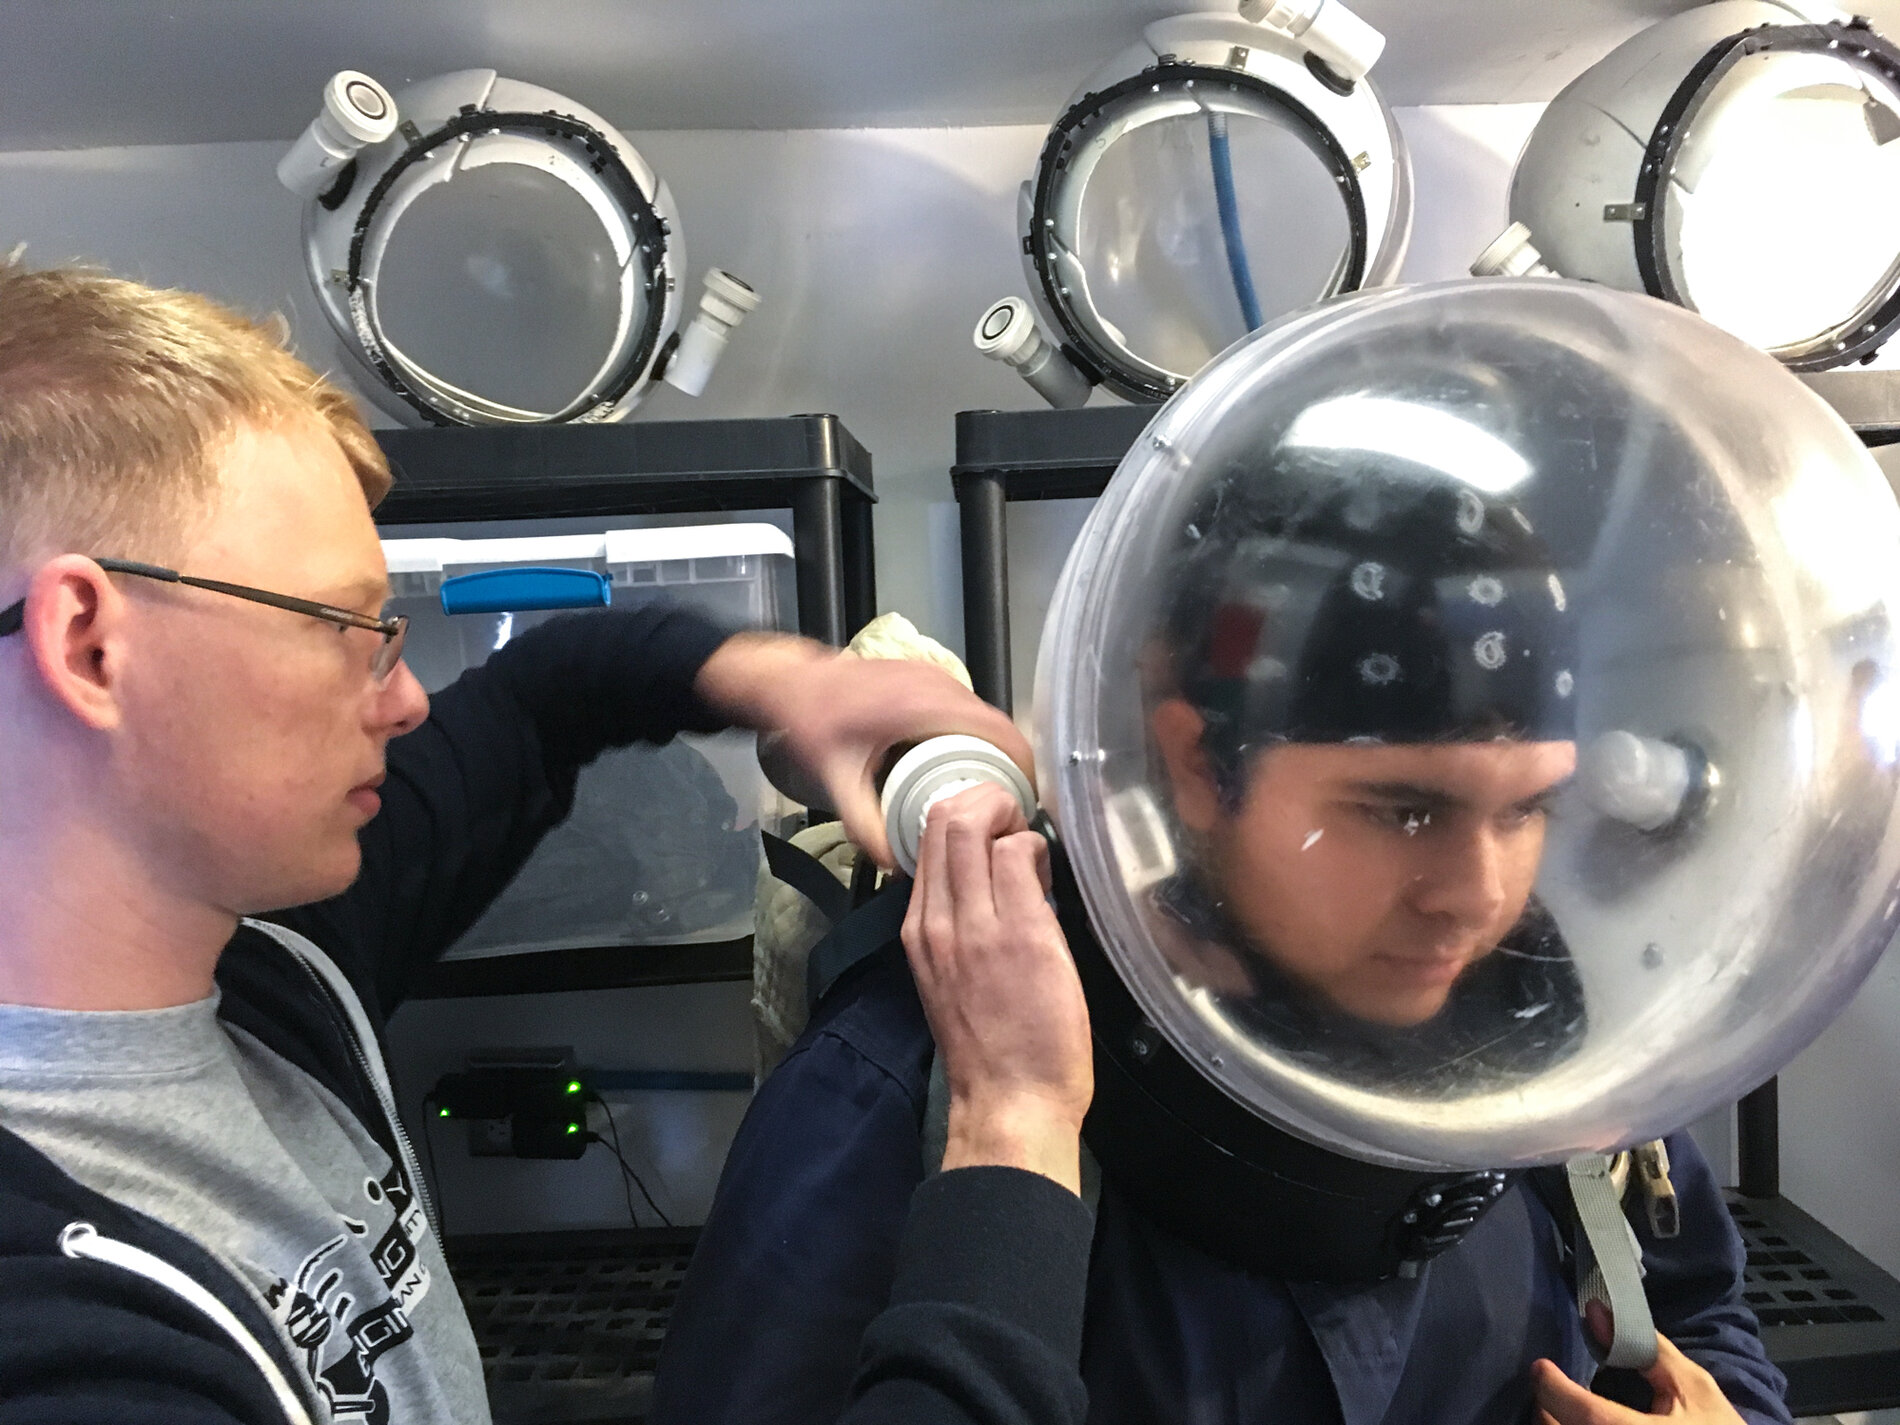 Quaas helps Espinoza suit up for a trip outside the station.     (Rae Ellen Bichell/NPR)